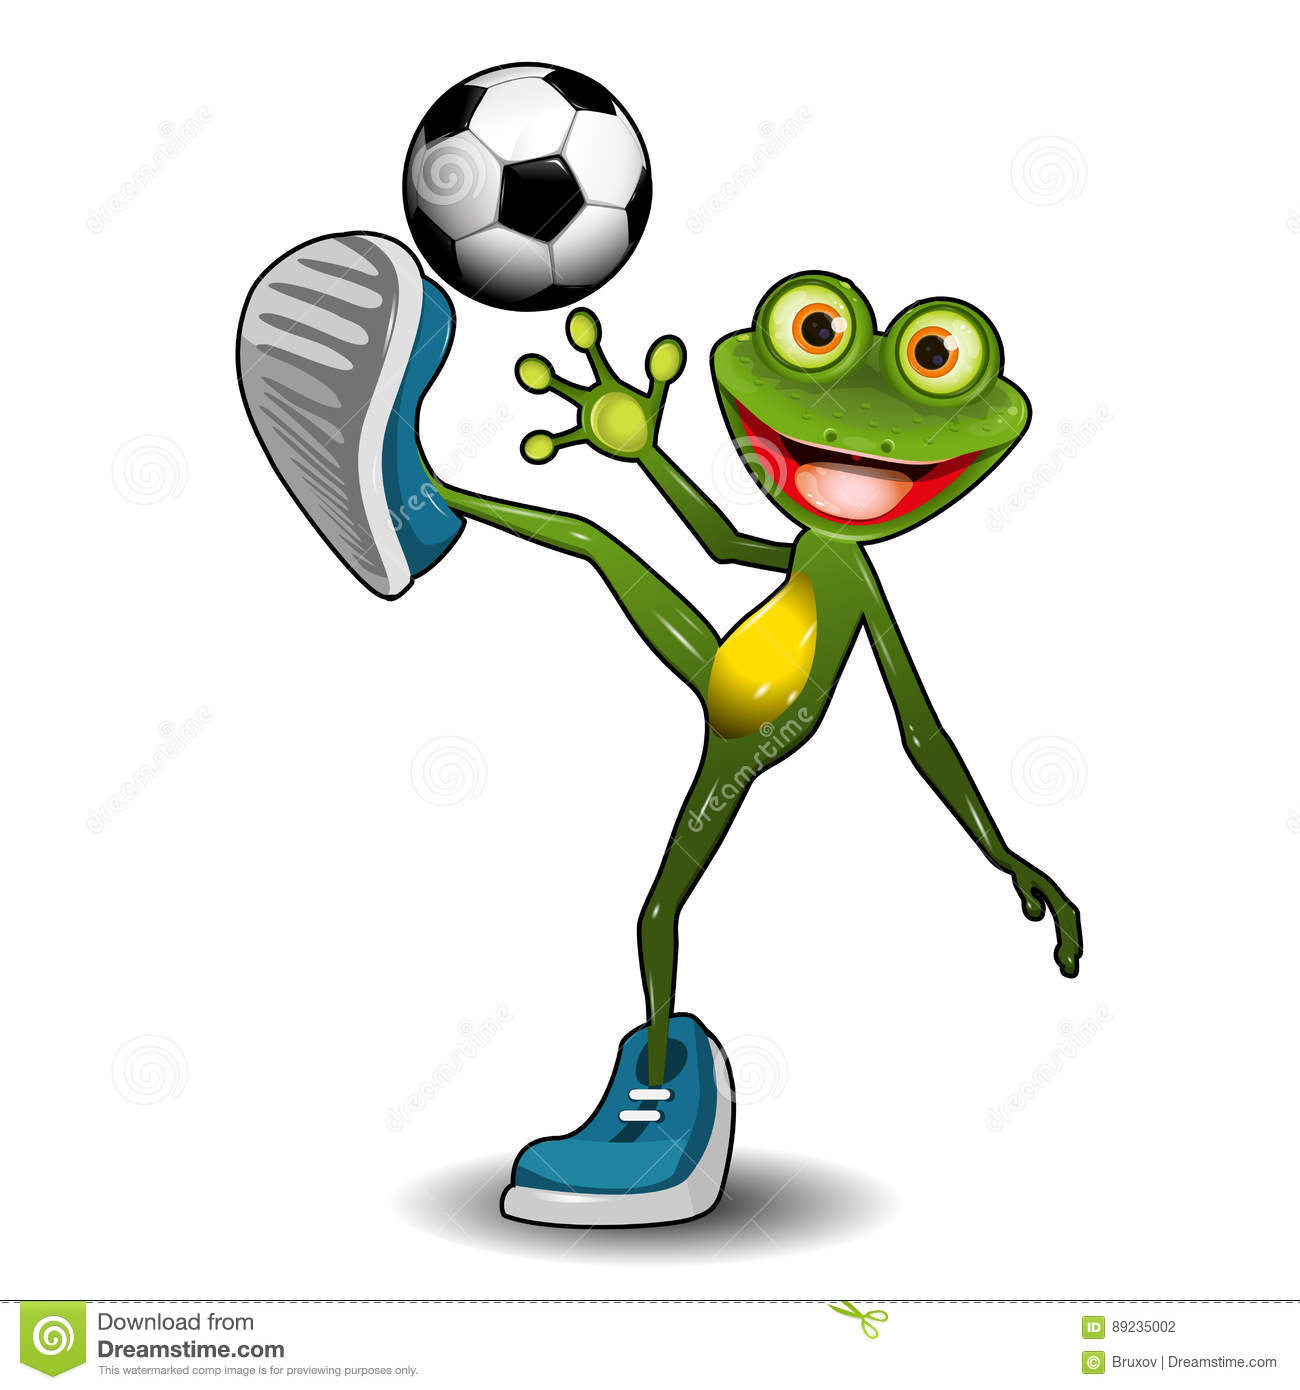 frog with a soccer ball stock vector illustration of sports 89235002 rh dreamstime com Dead Frogs Volleyball Teamwork Volleyball